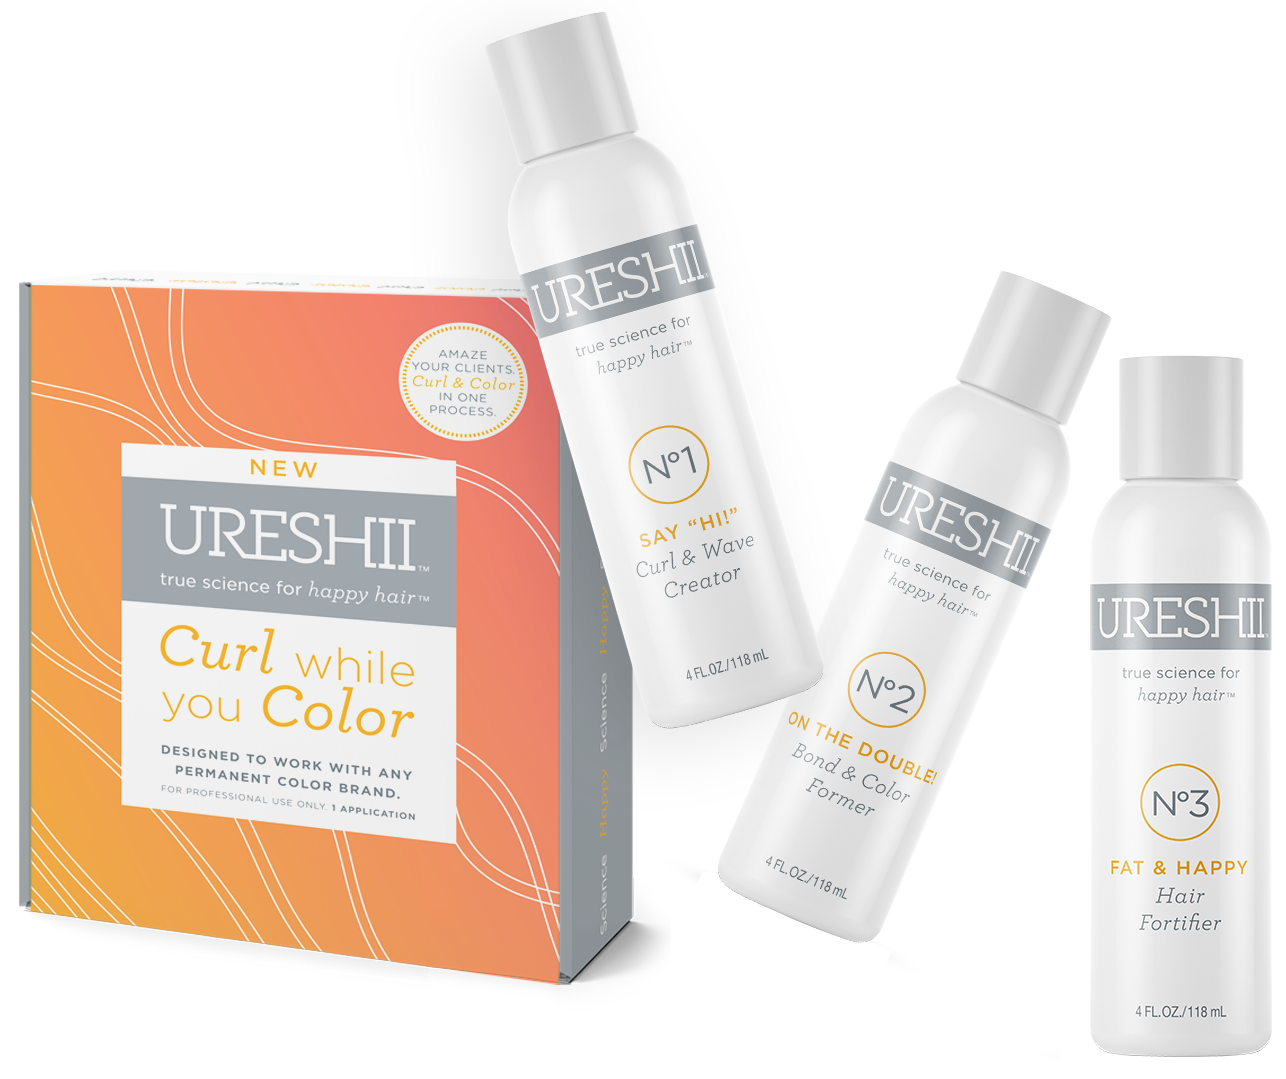 Prepare to amaze your clients … Finally you can deliver permanent color and curl in the same process. -